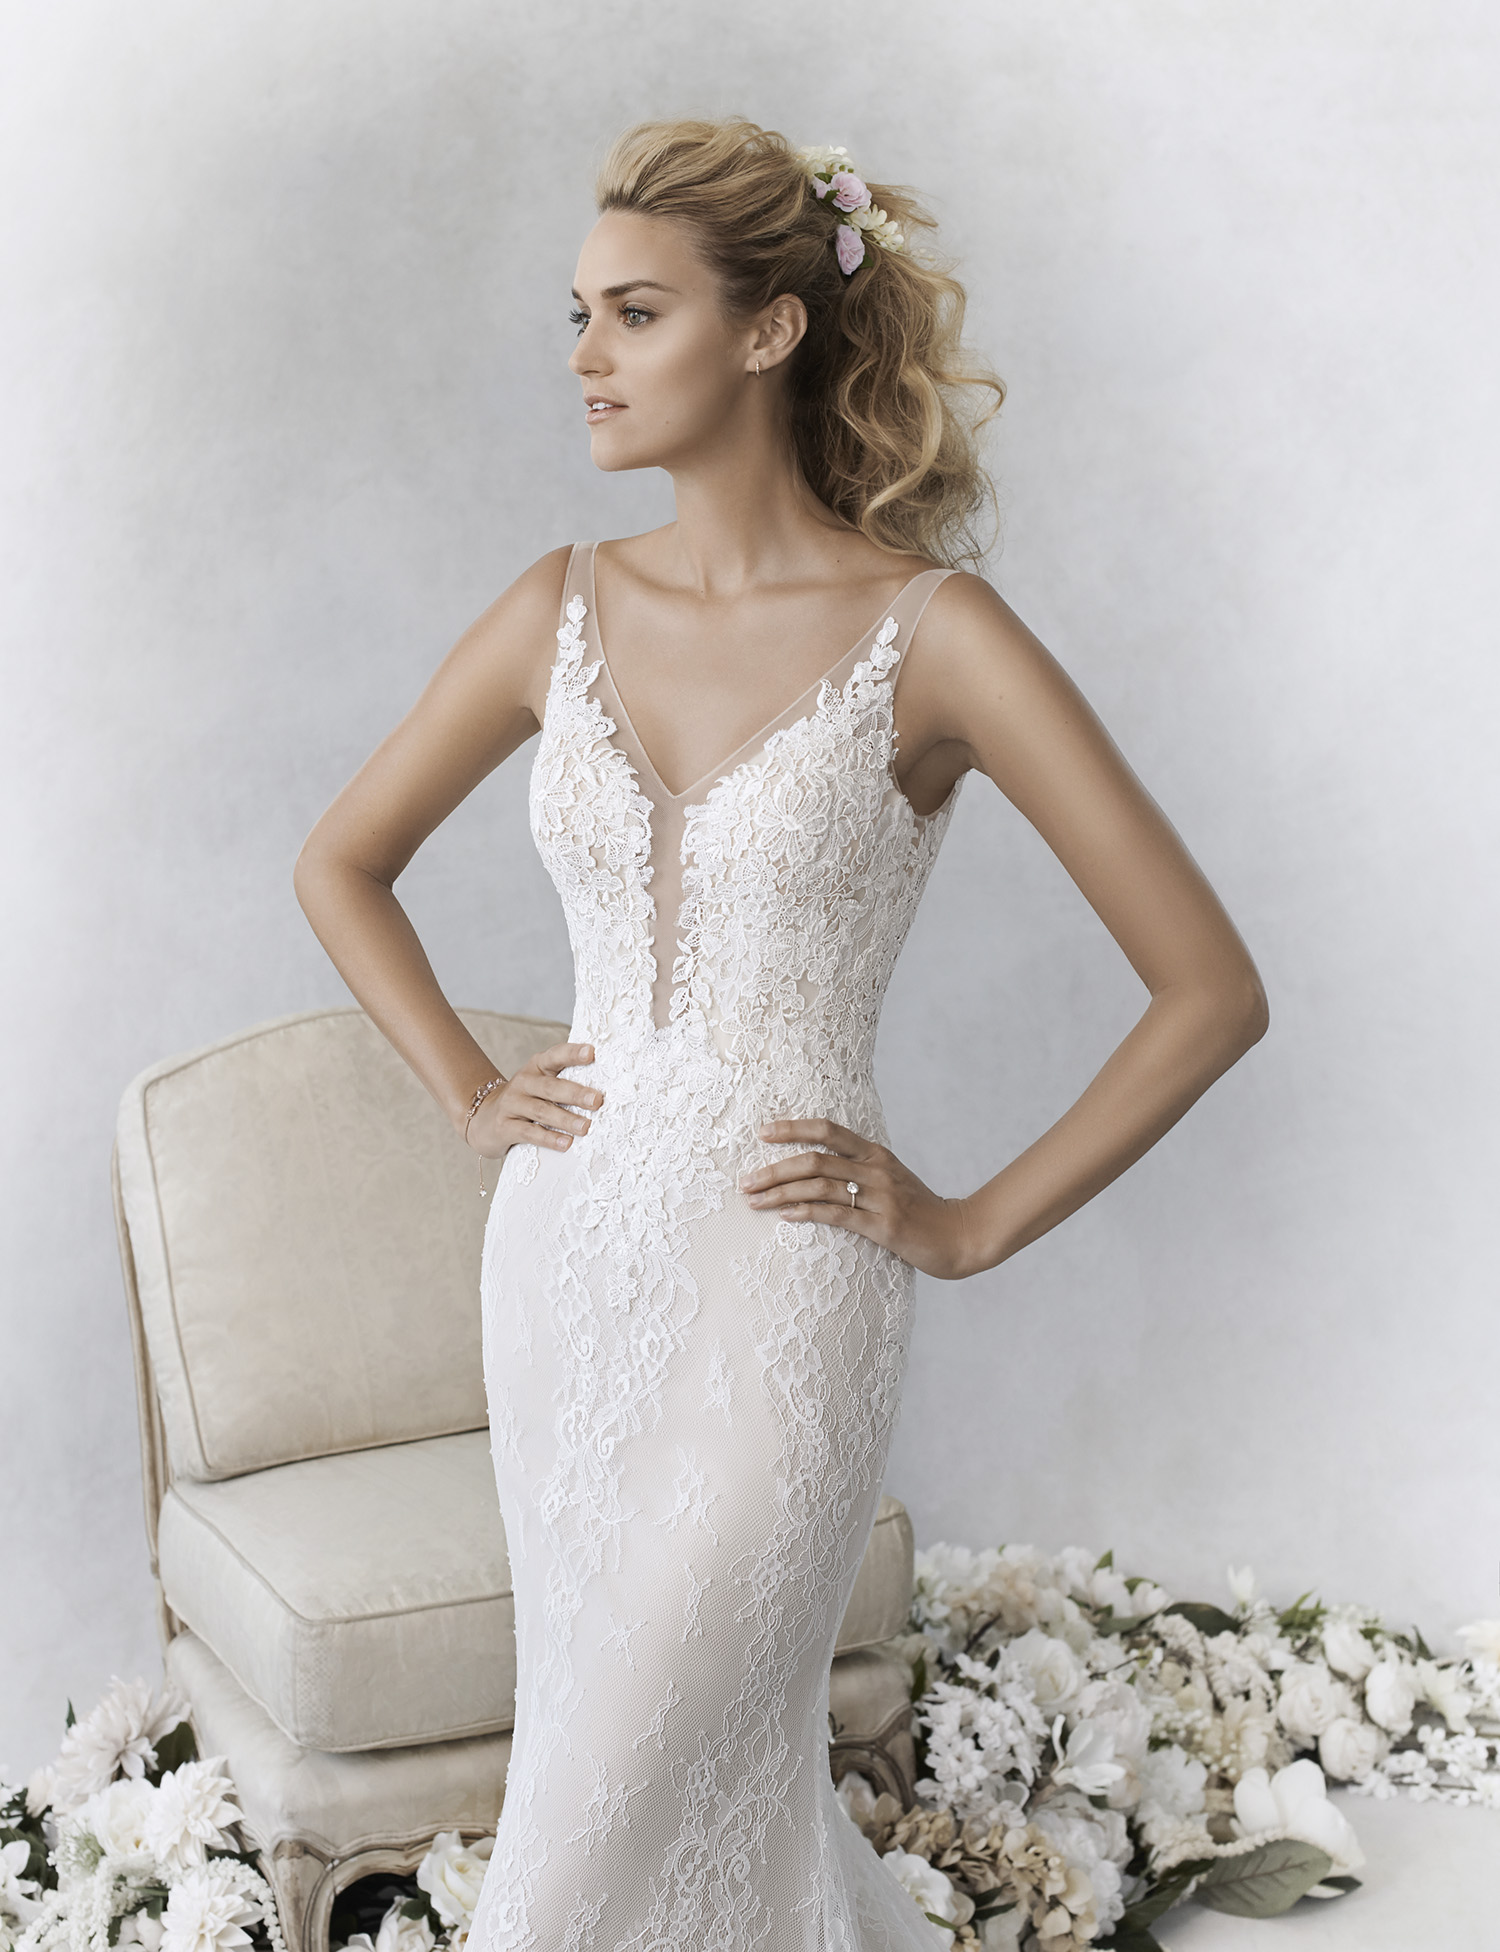 Need to purchase something off the rack? We can help you too, as many of our Bridal Gown samples are available for you to take home on the same day you come ...